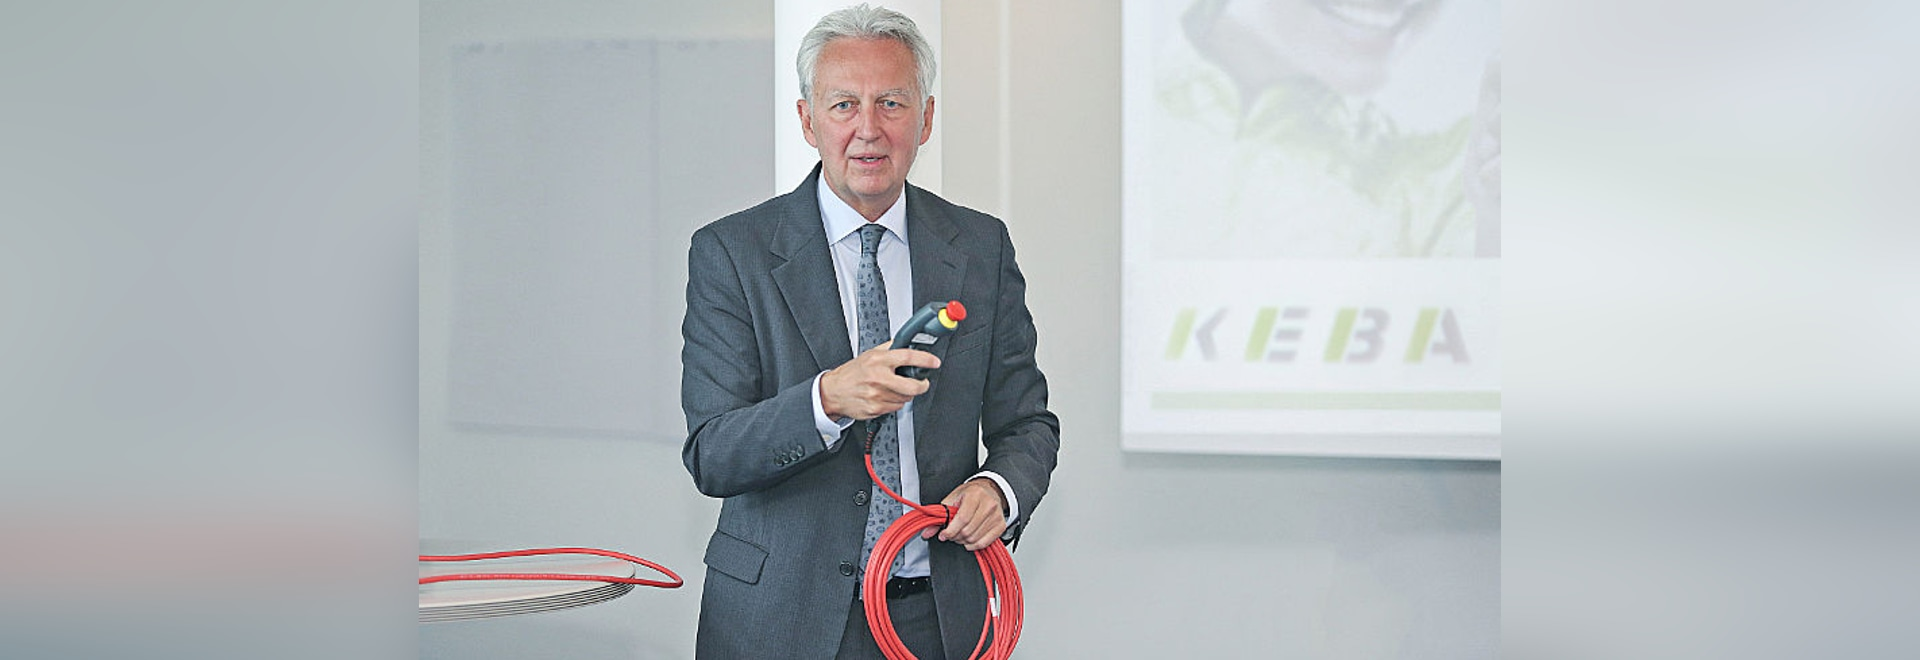 KEBA maintains its successful growth - Increased sales revenues through internationalization